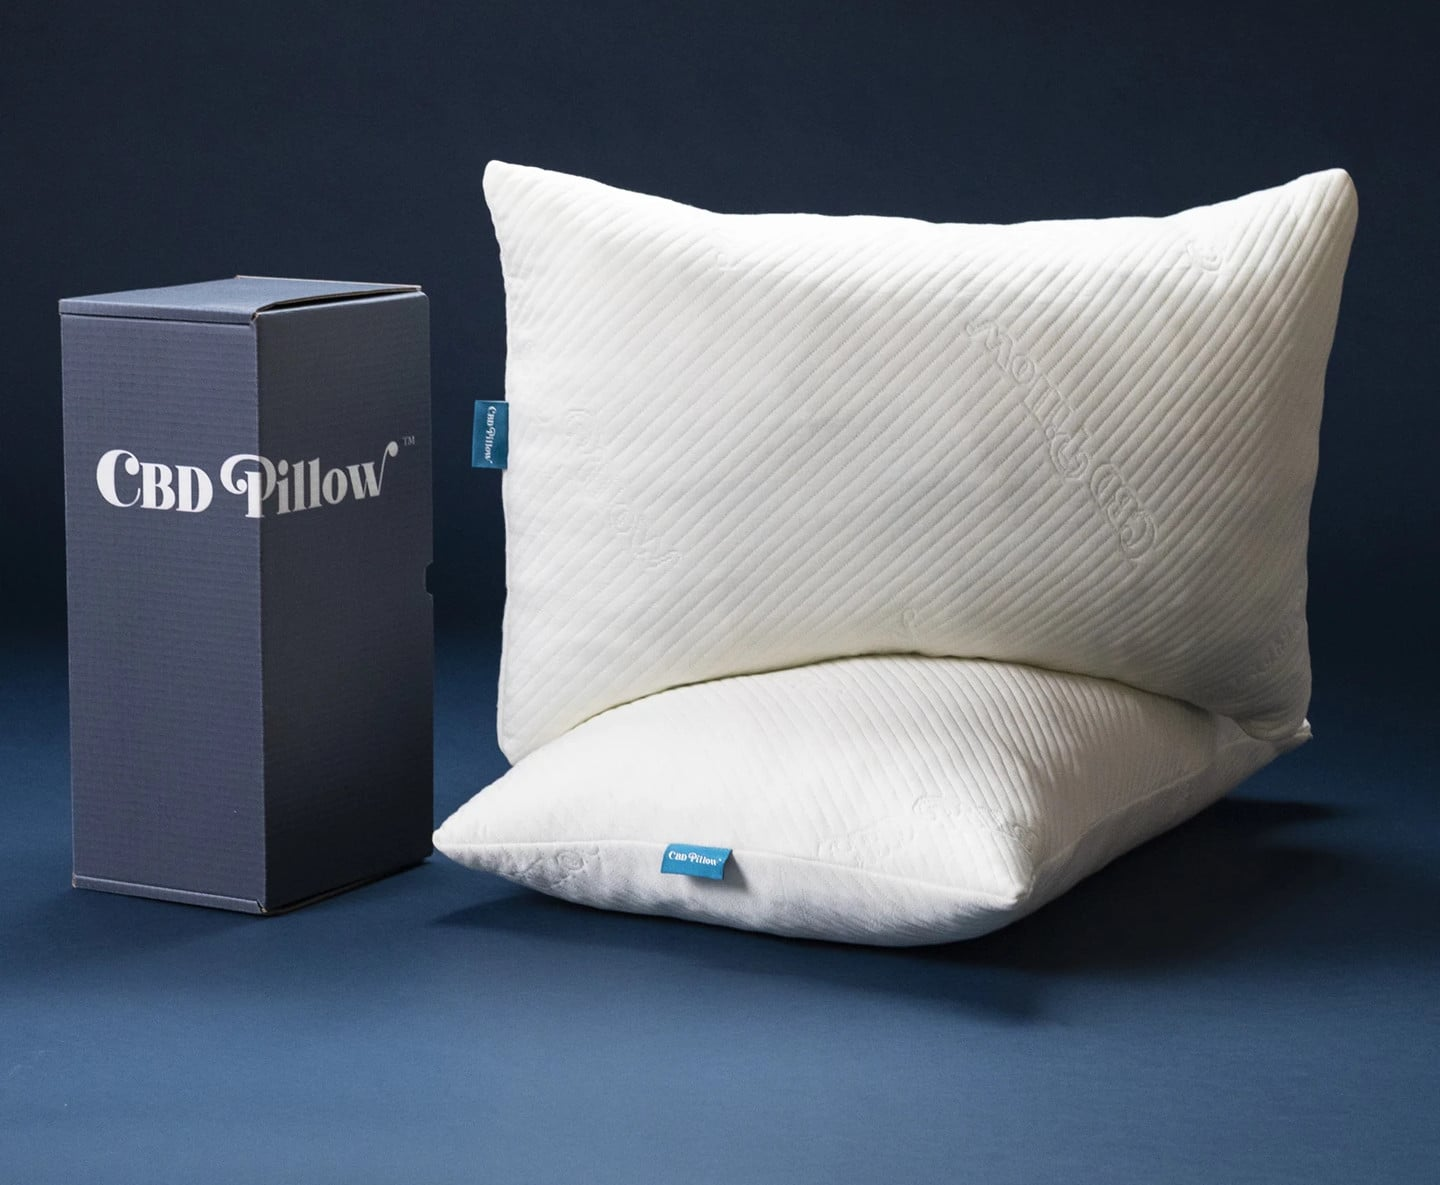 cbd pillow review